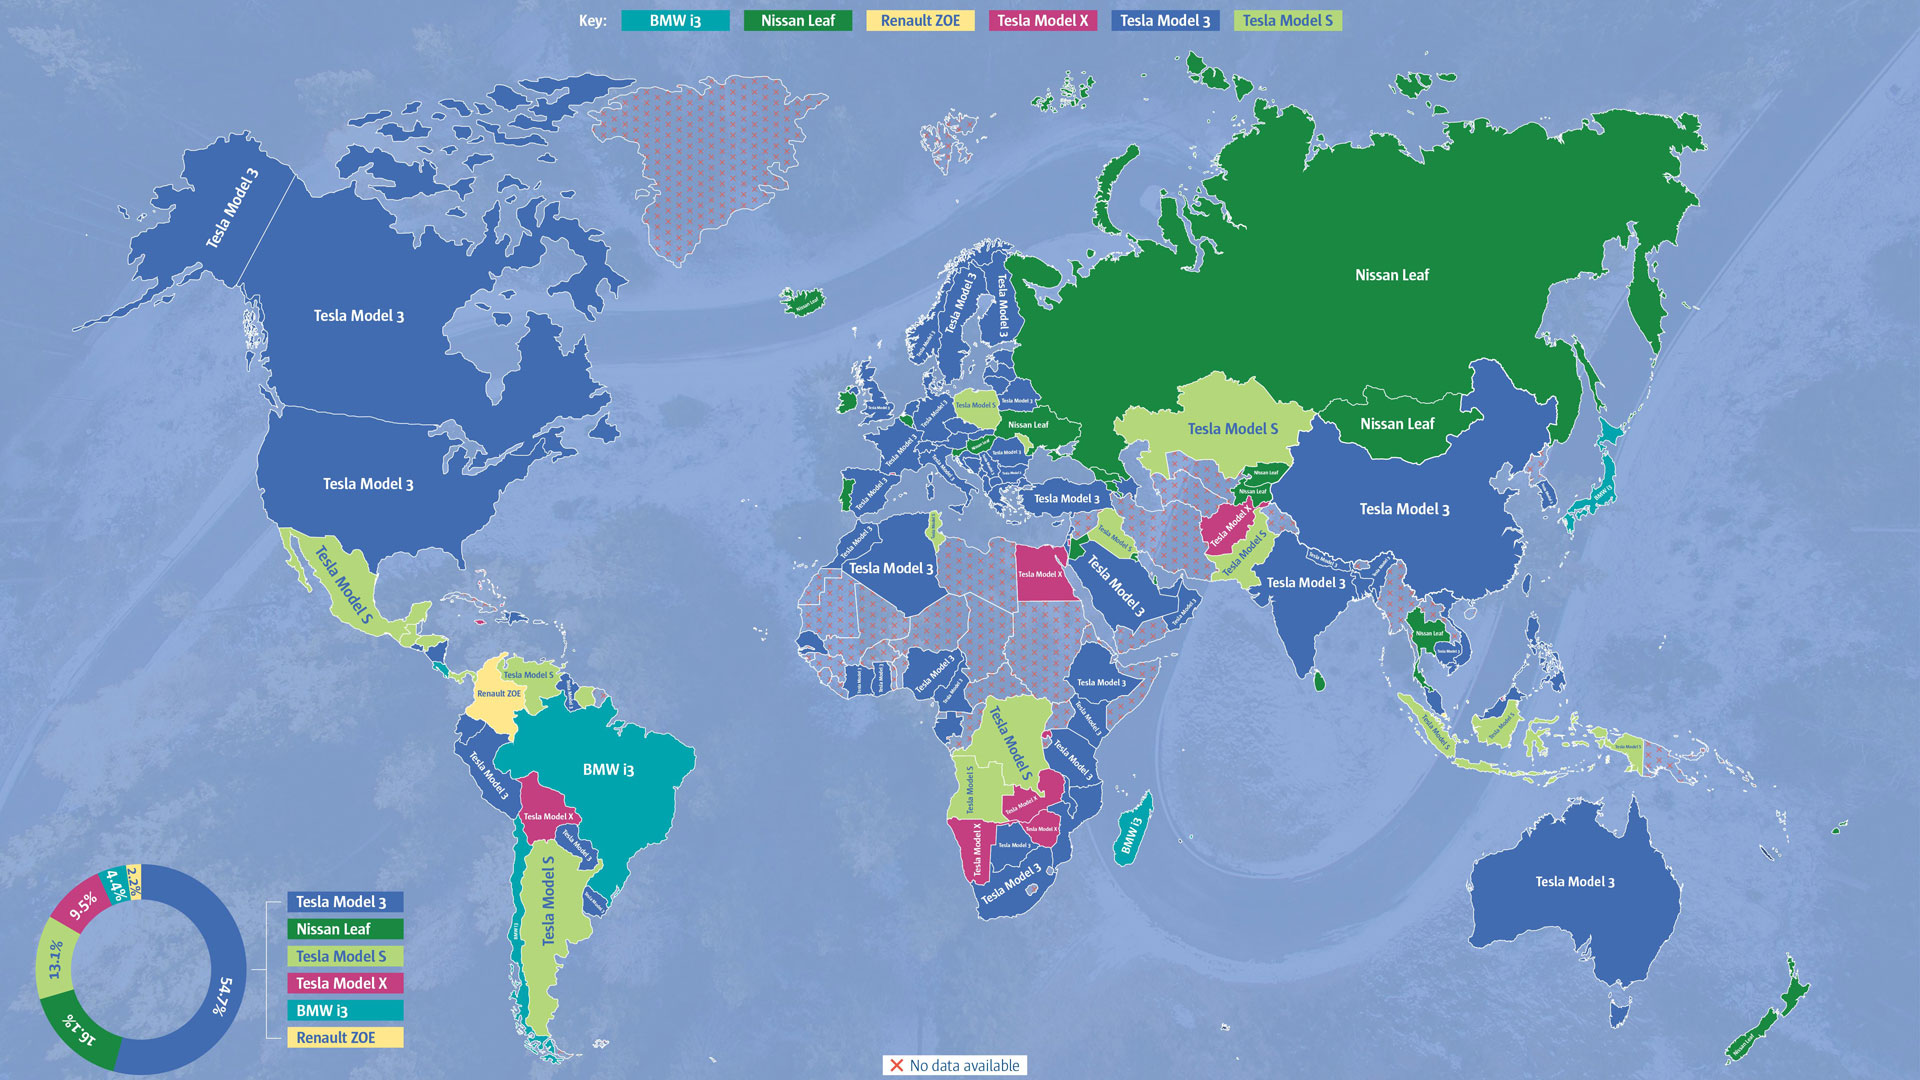 Most-wanted electric cars world map